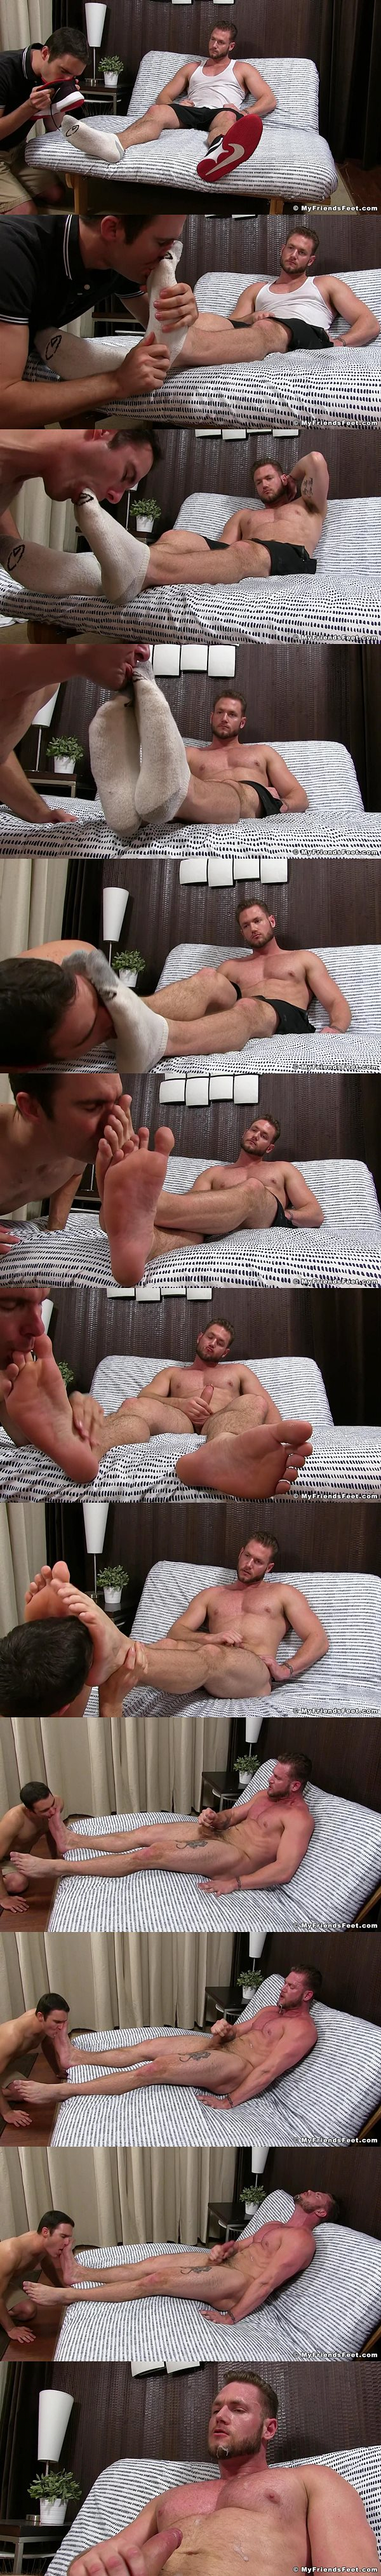 Myfriendsfeet - Ace Era Foot Worshiped by Cameron Kincade 02